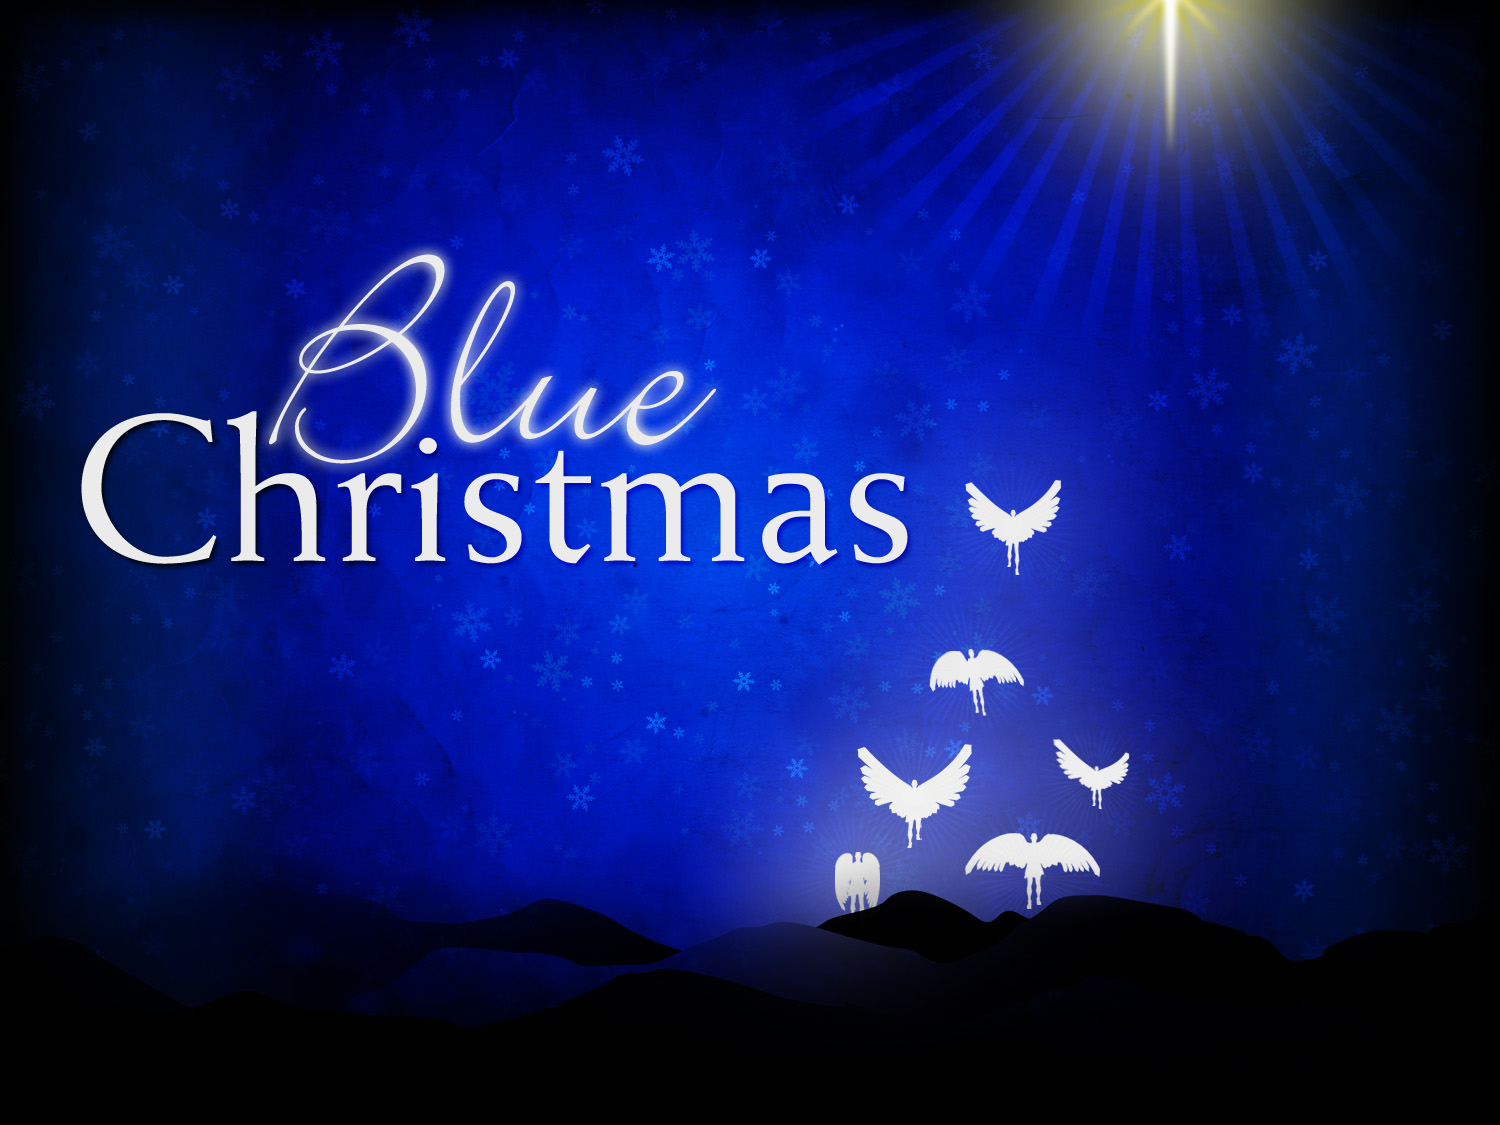 Blue christmas service clipart jpg free library February 2019 | Nasty Wallpapers jpg free library